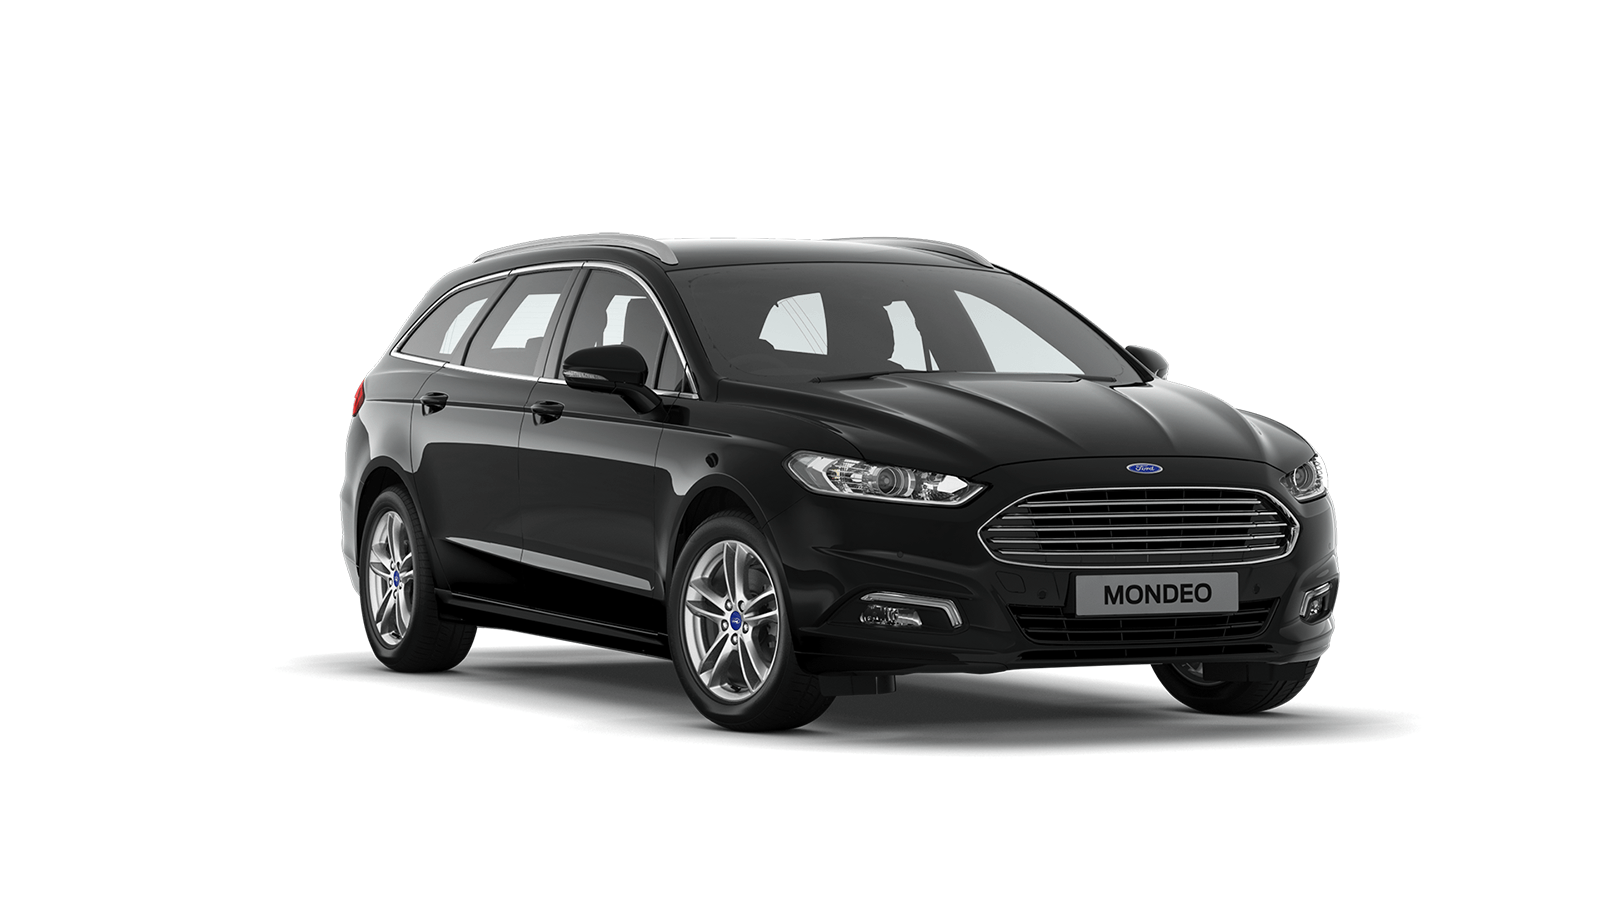 https://www.dealerinternet.co.uk/images/MONDEO%20(CD345)/2018.75/Estate/ZetecEdition/SHADOW-BLACK.png